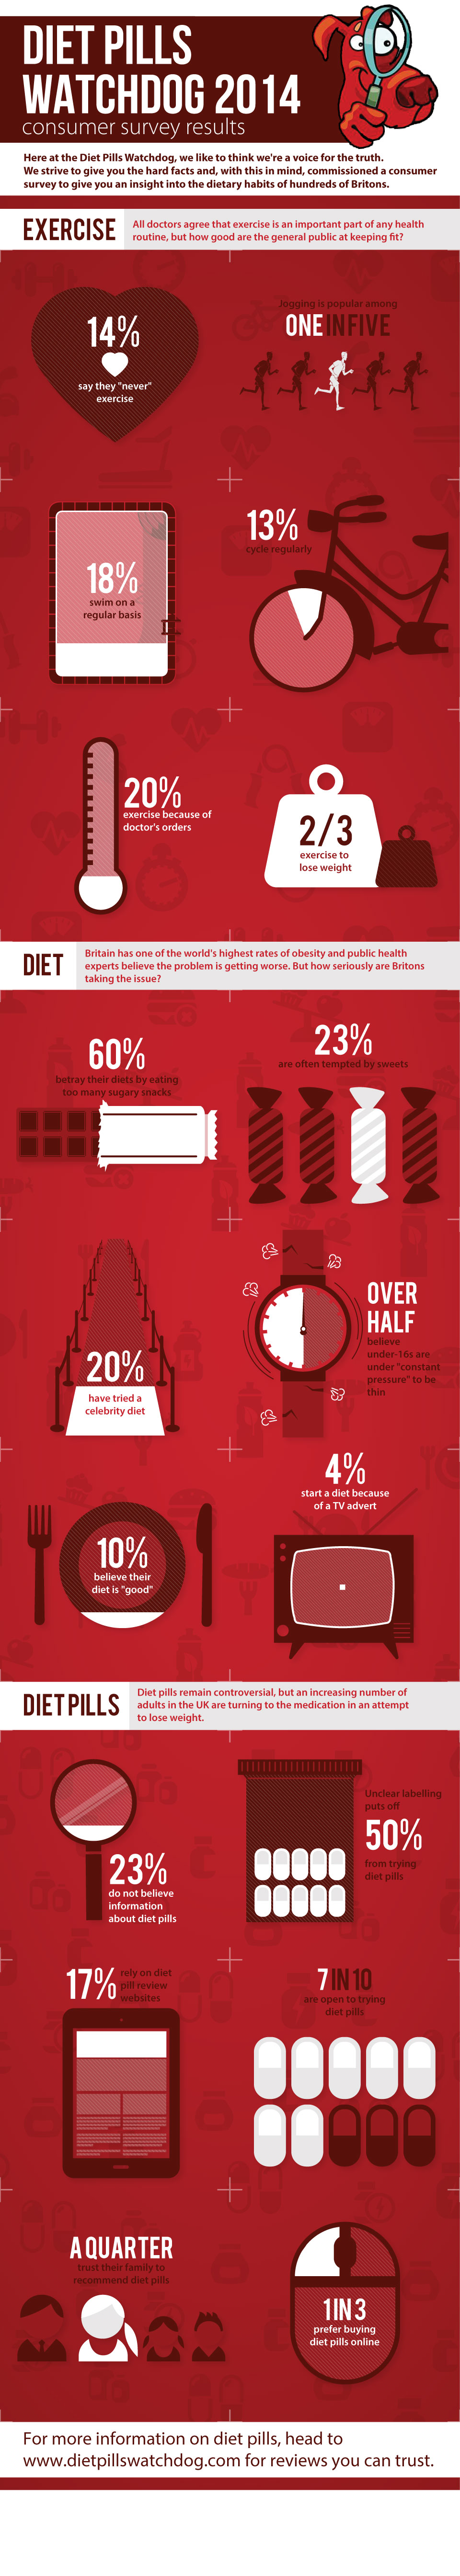 diet-pills-watchdog-2014-infographic (1)